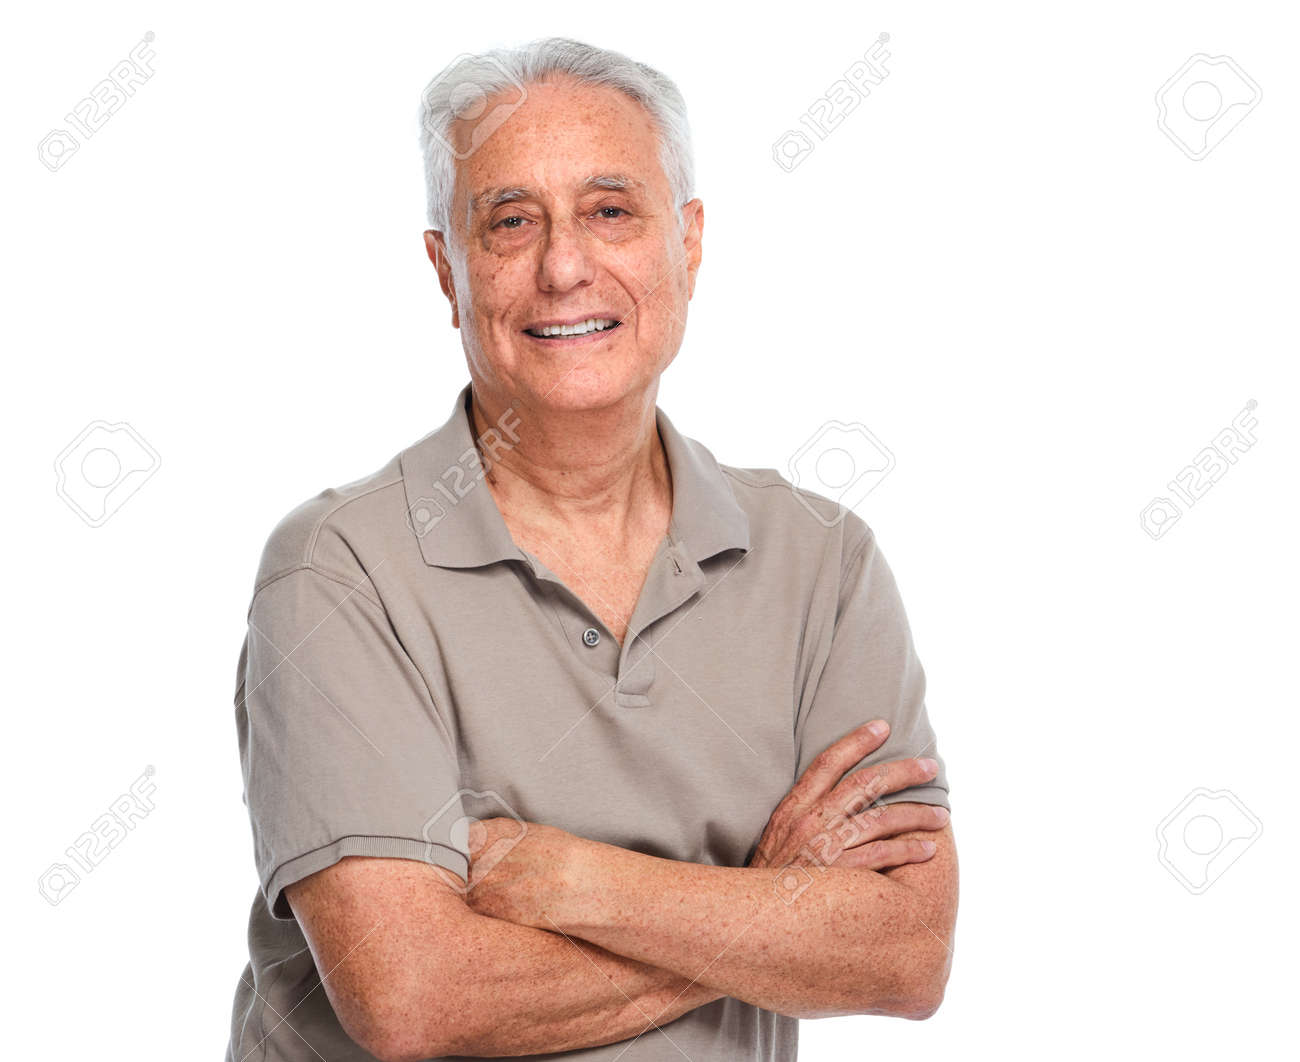 Smiling elderly man portrait isolated over white background. Standard-Bild - 64166612